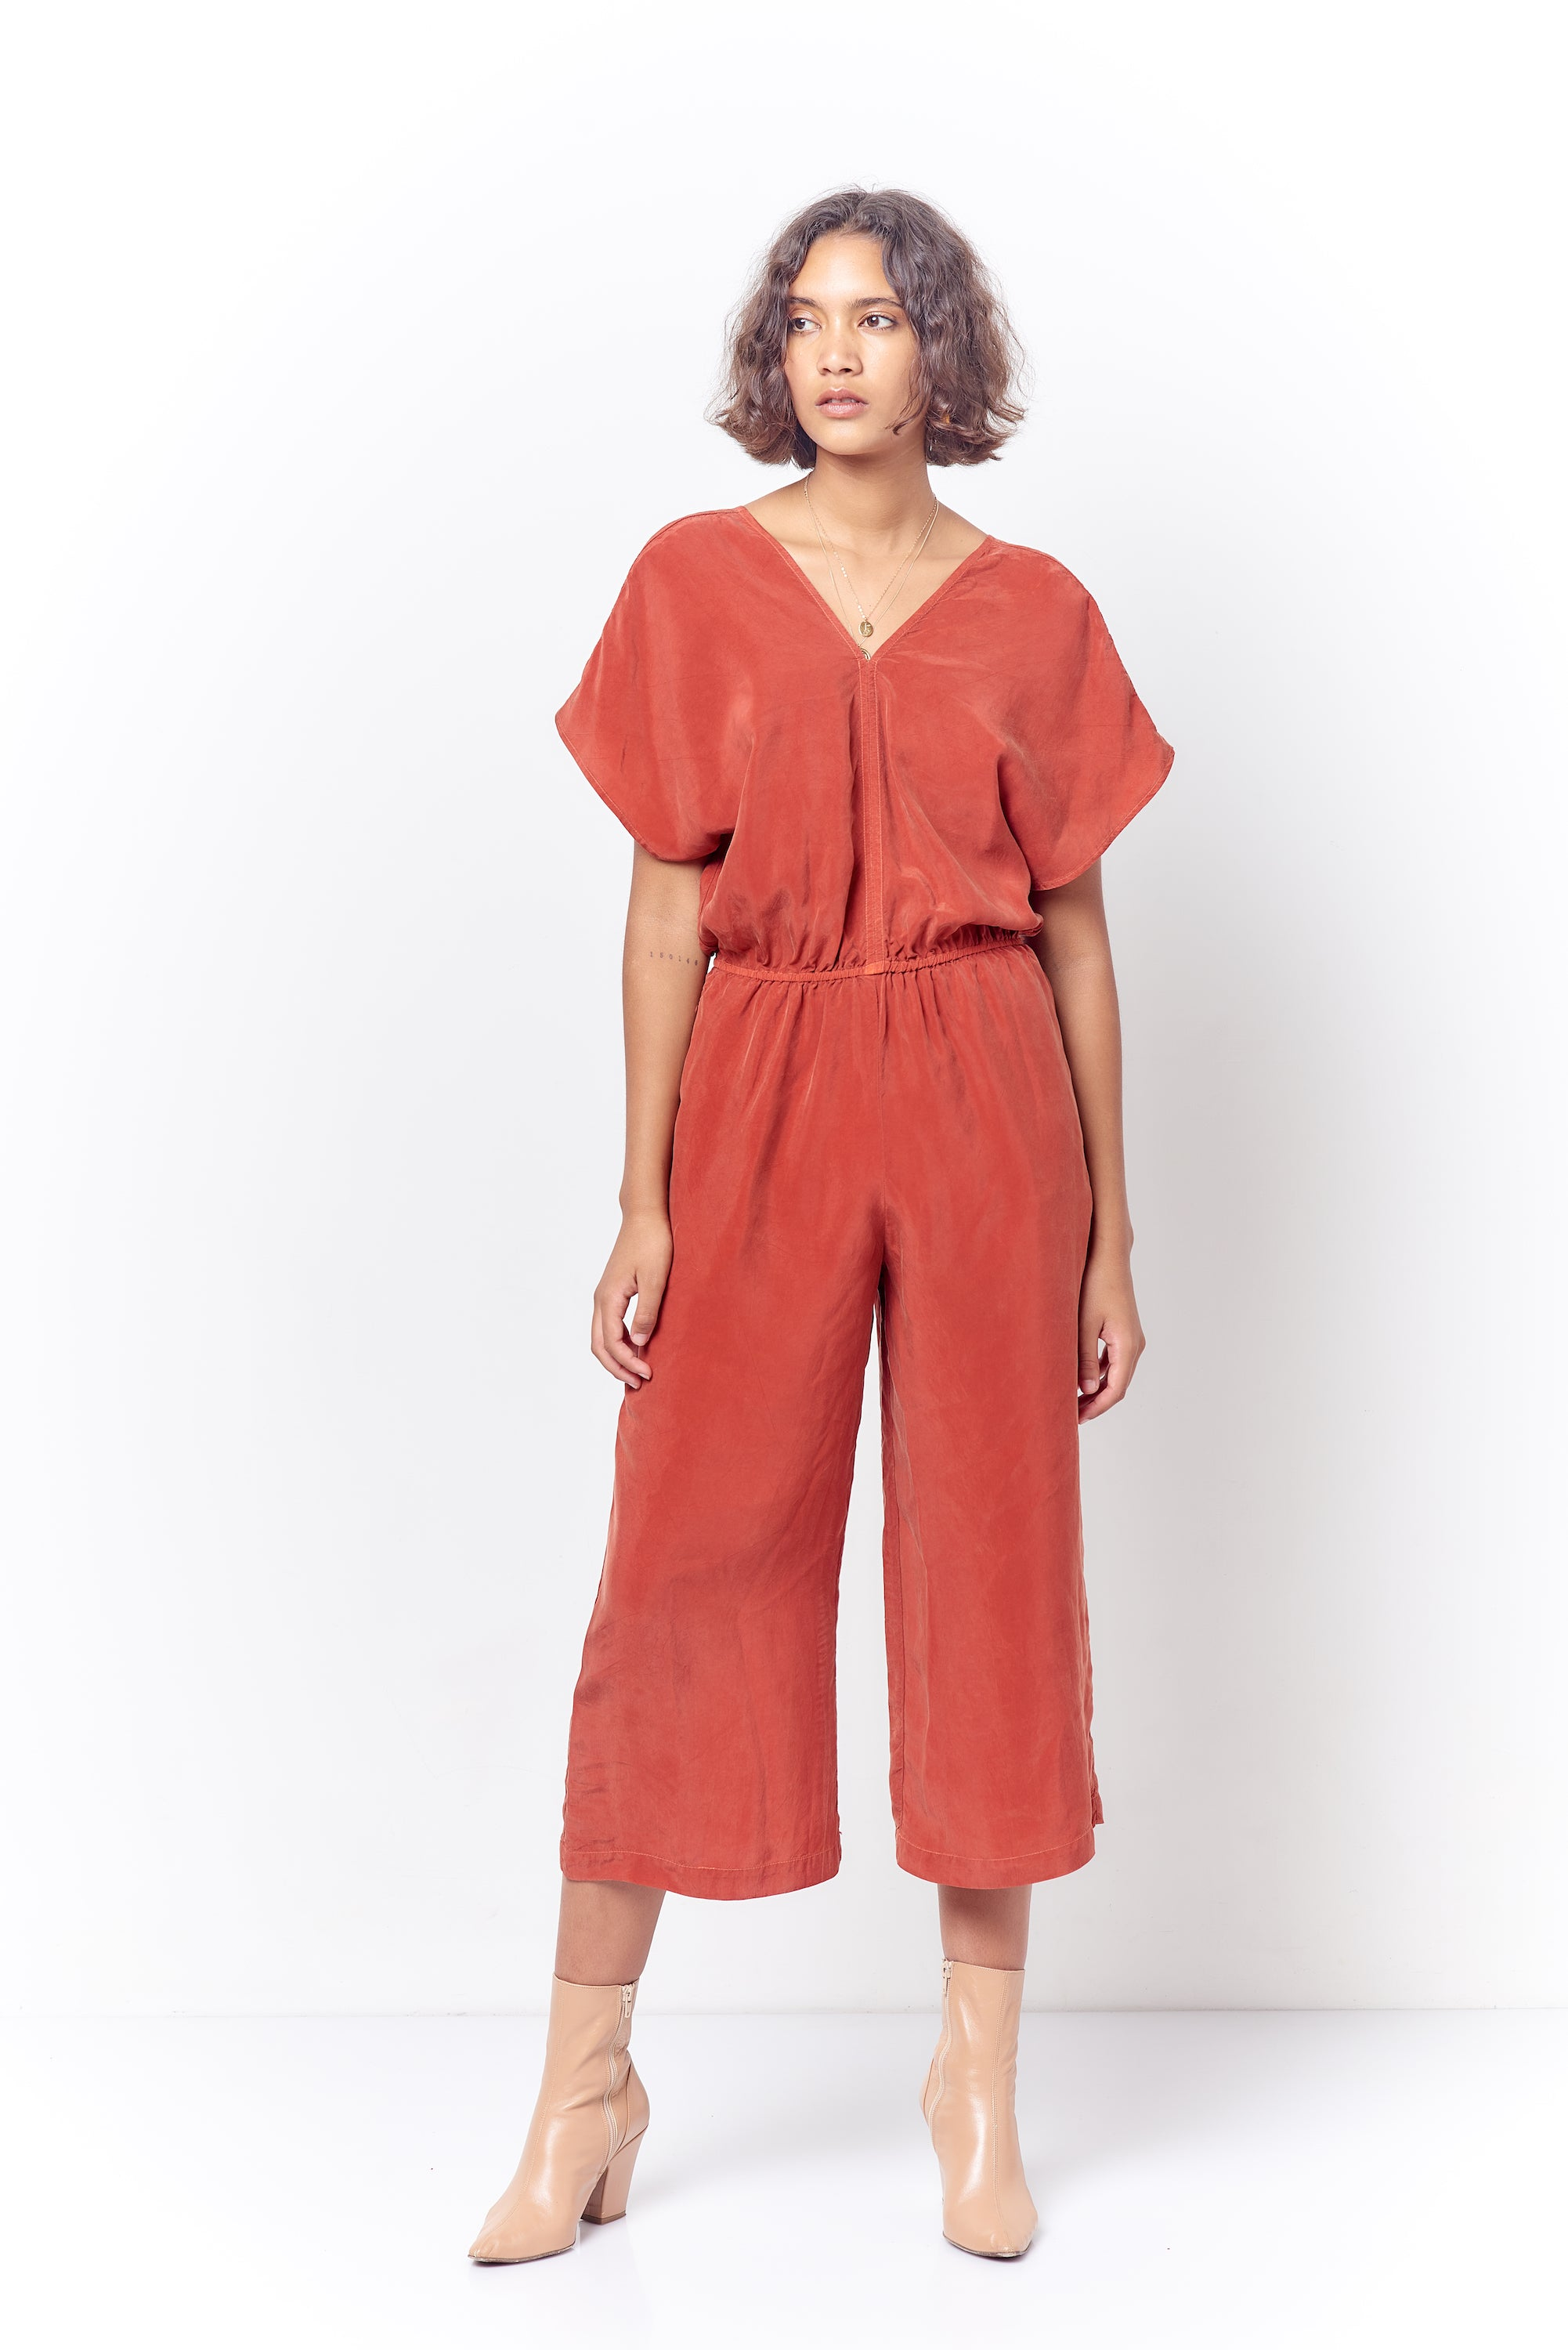 MELINDA V Cropped Jumpsuit - Solid